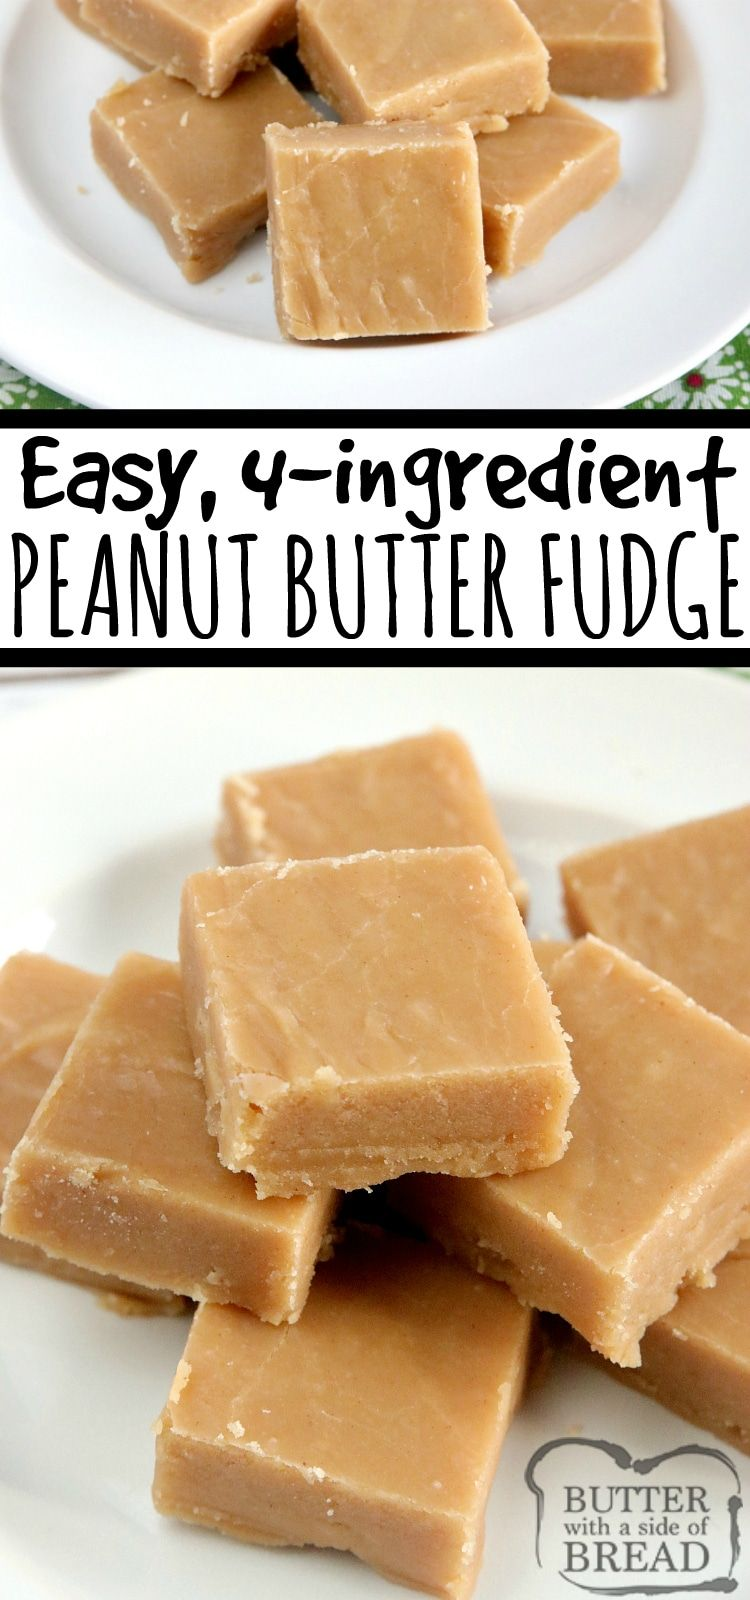 Peanut Butter Fudge Is Easily Made With Only 4 Ingredients No Candy Thermometer Needed Fudge Recipes Easy Peanut Butter Fudge Easy Peanut Butter Fudge Recipe